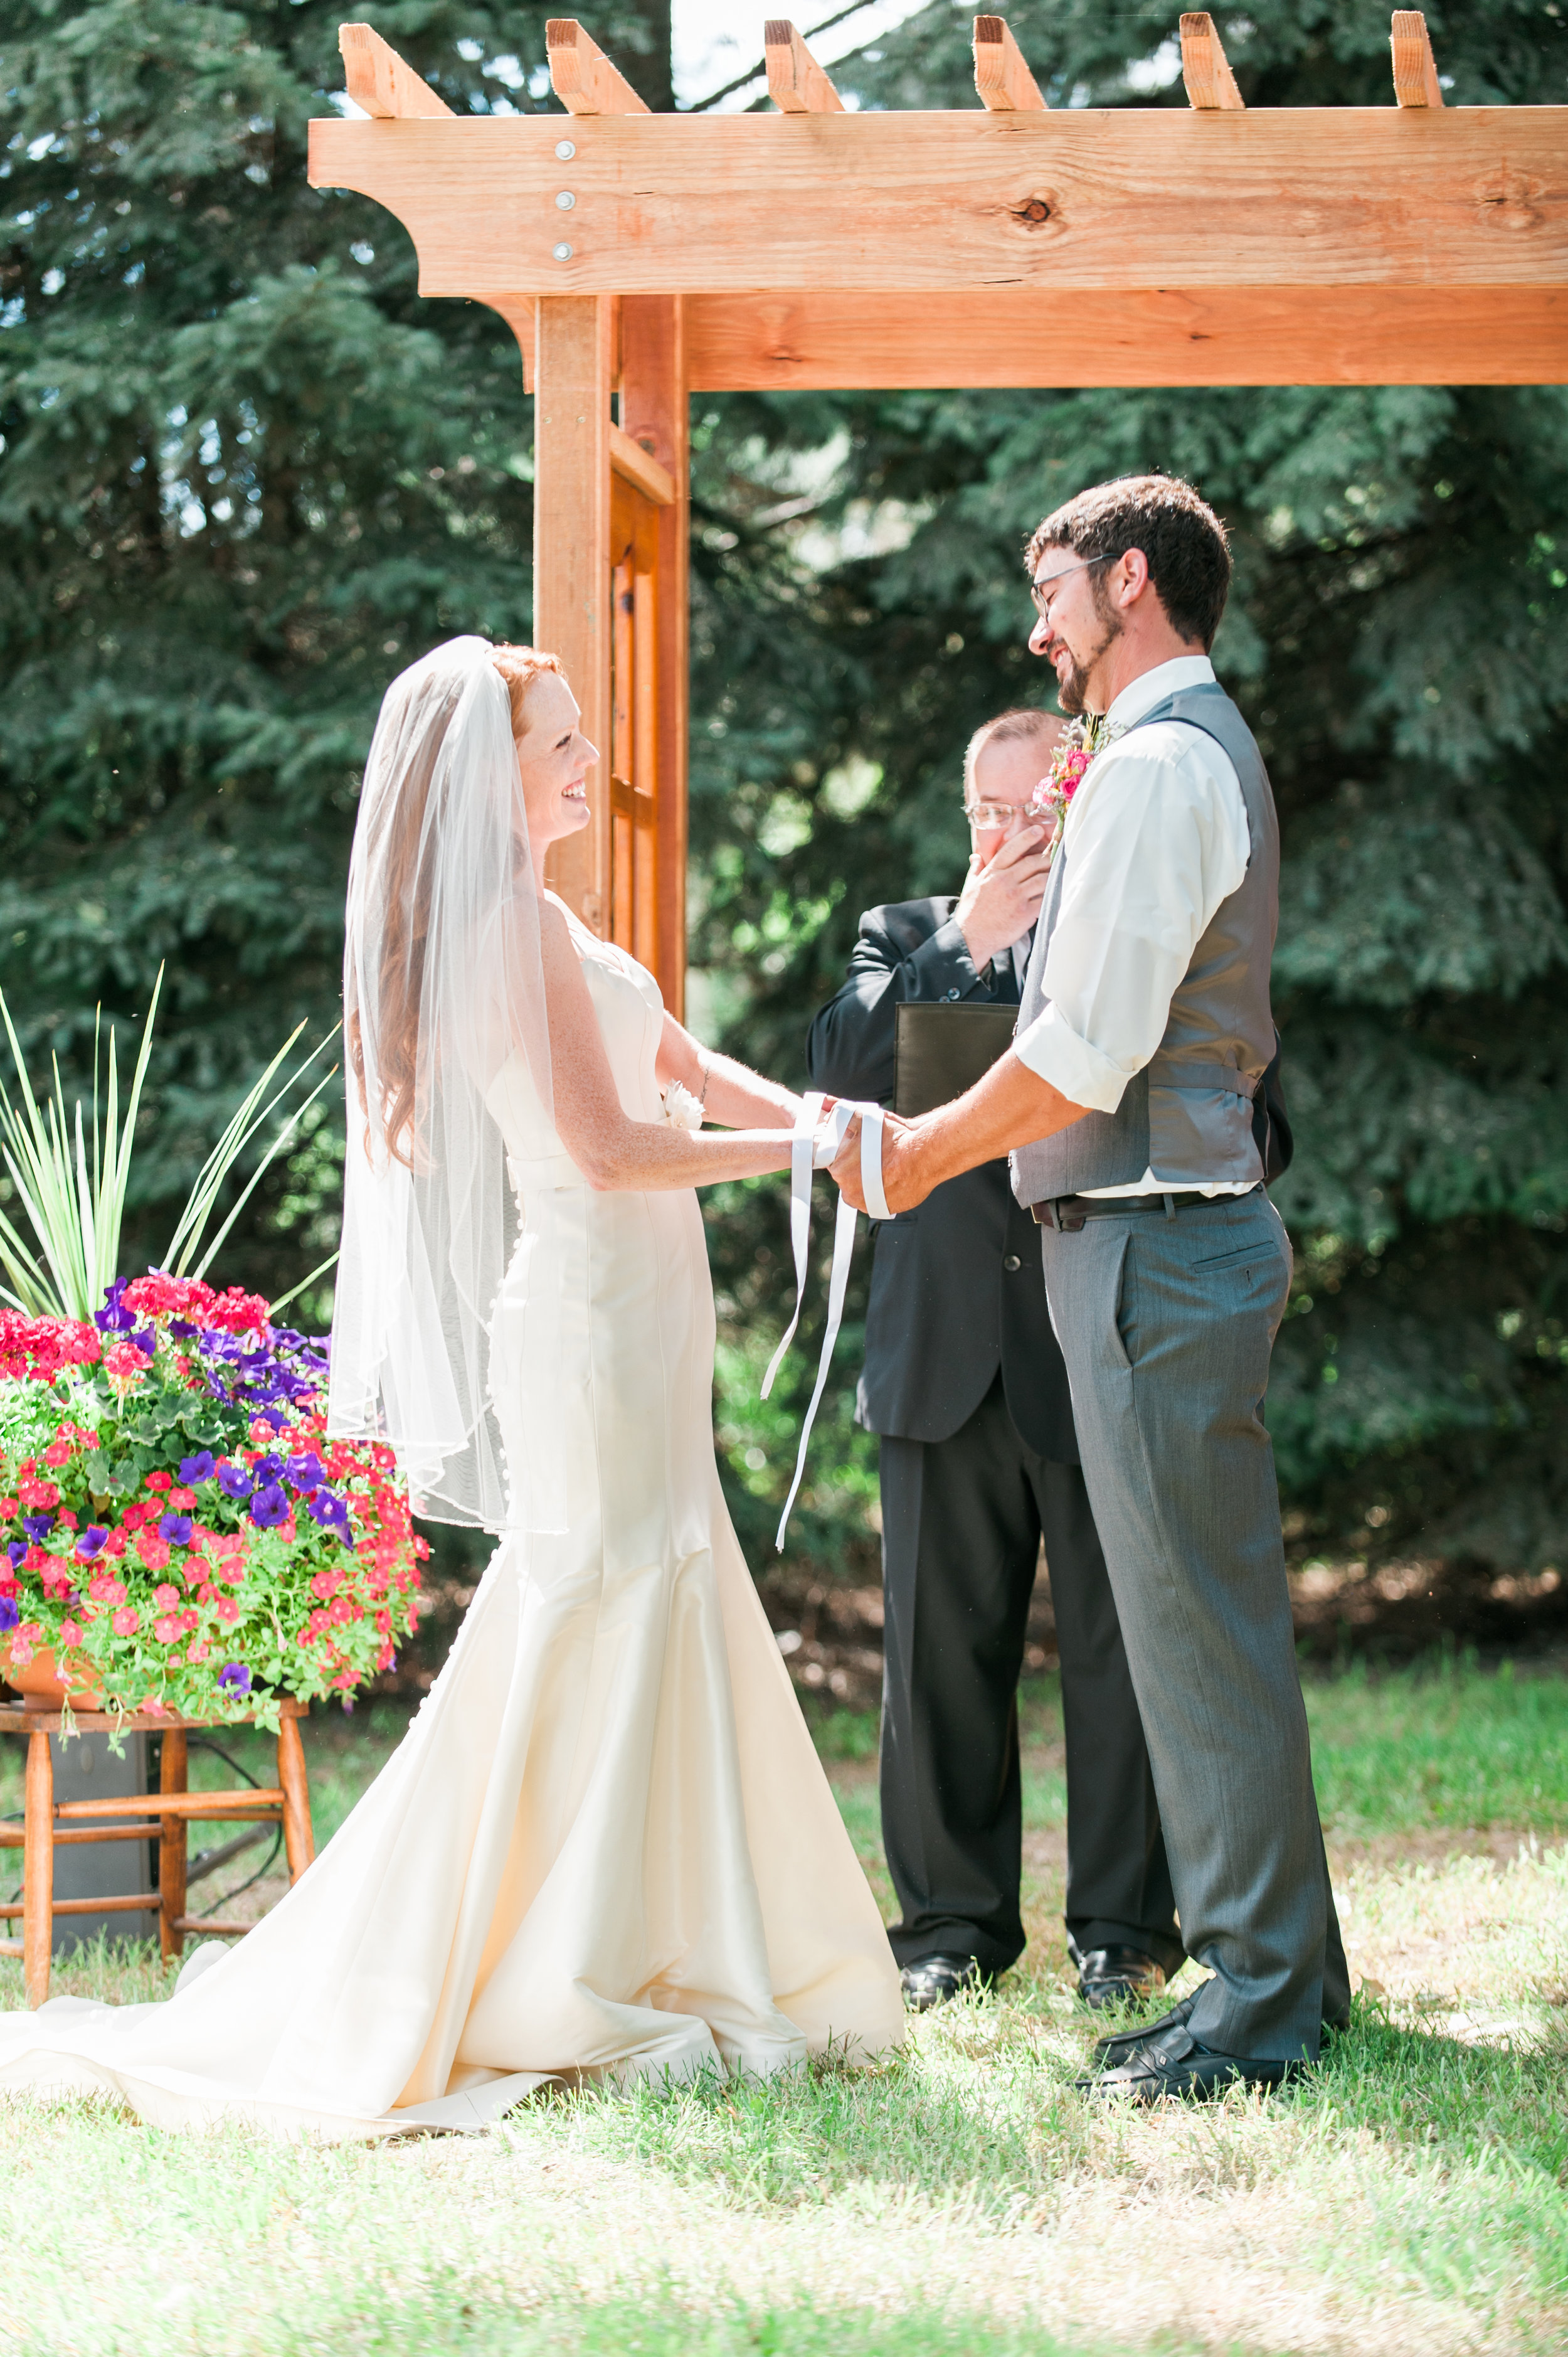 THE HANDFASTING STEMS FROM THE OLD PEGAN RELIGIONS. THE TYING OF THE HANDS SHOWS HOW COMMITTED THE COUPLE IS TOGETHER.